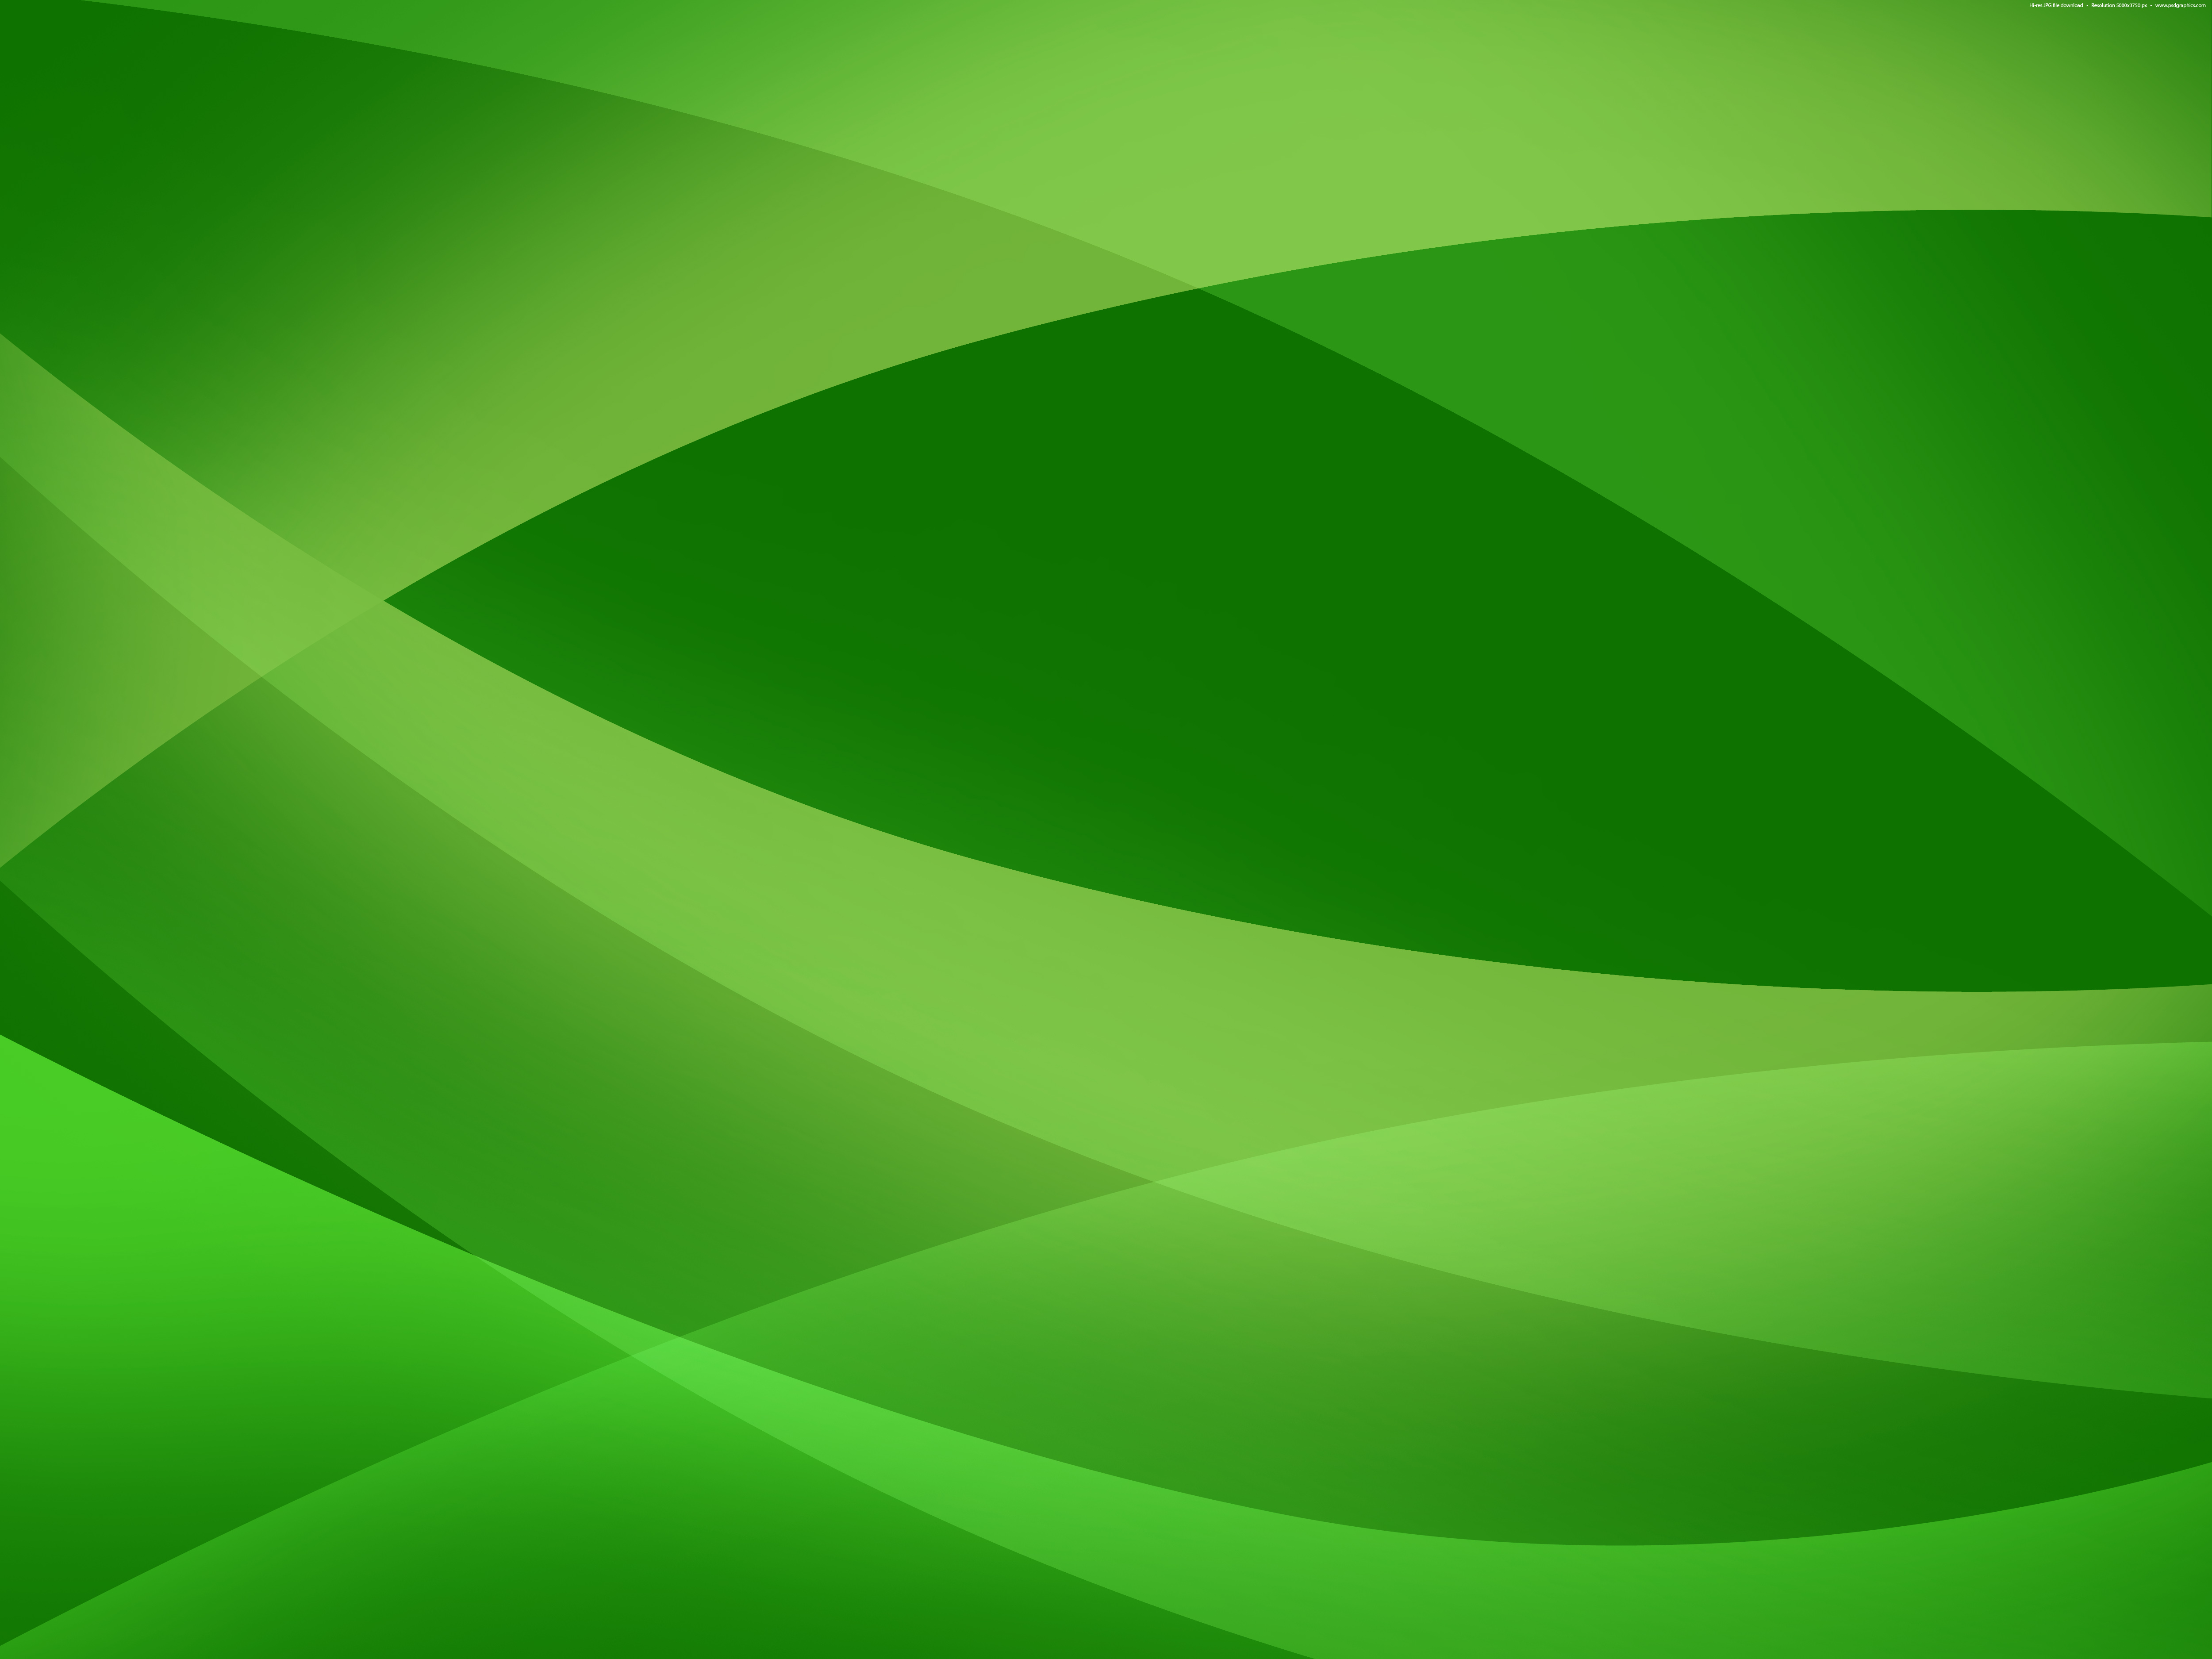 Abstract layout designs blue and green backgrounds PSDGraphics 5000x3750